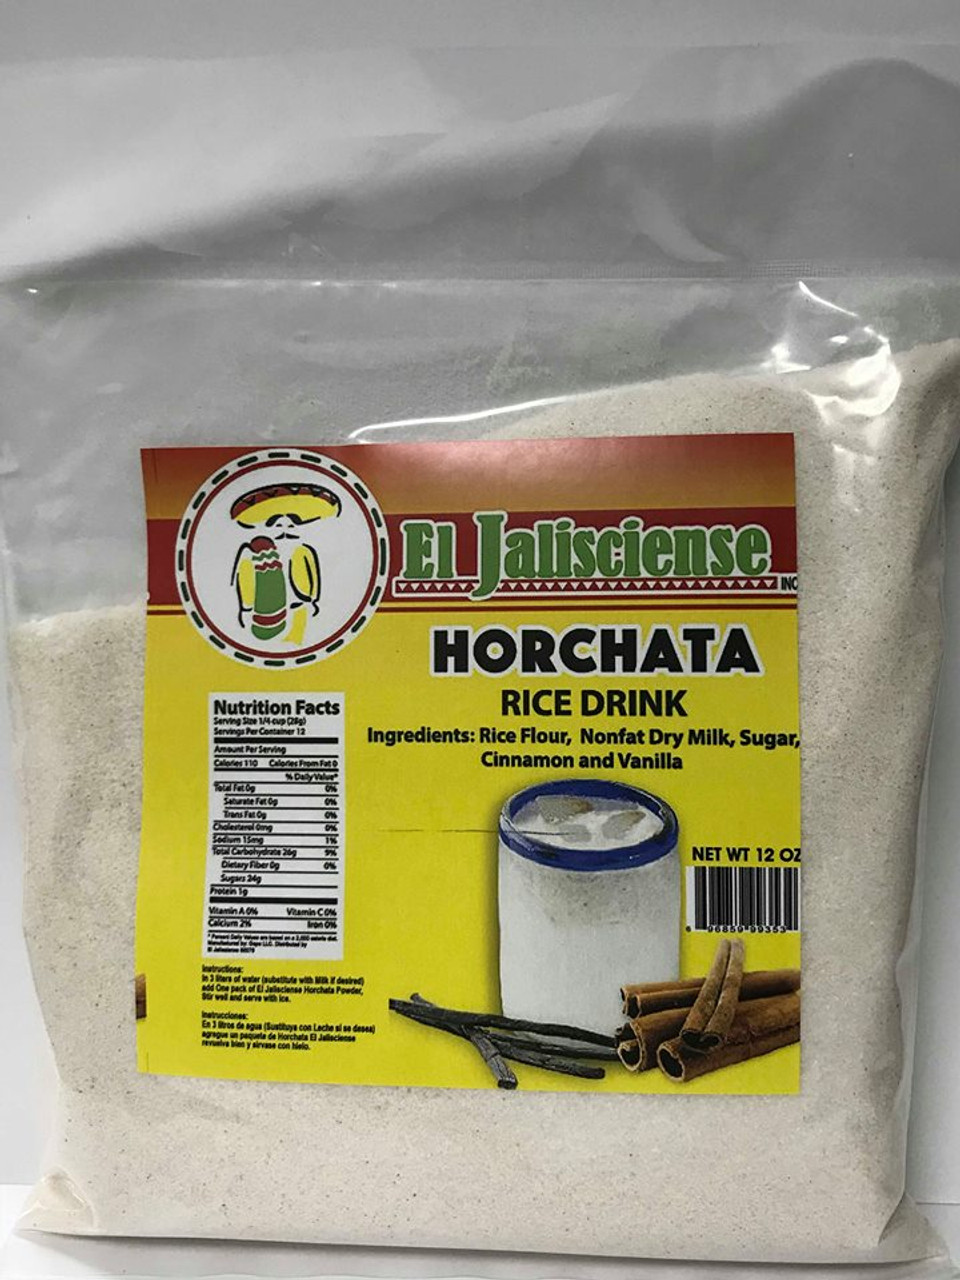 El Jalisciense Horchata Rice Drink 12oz Bag